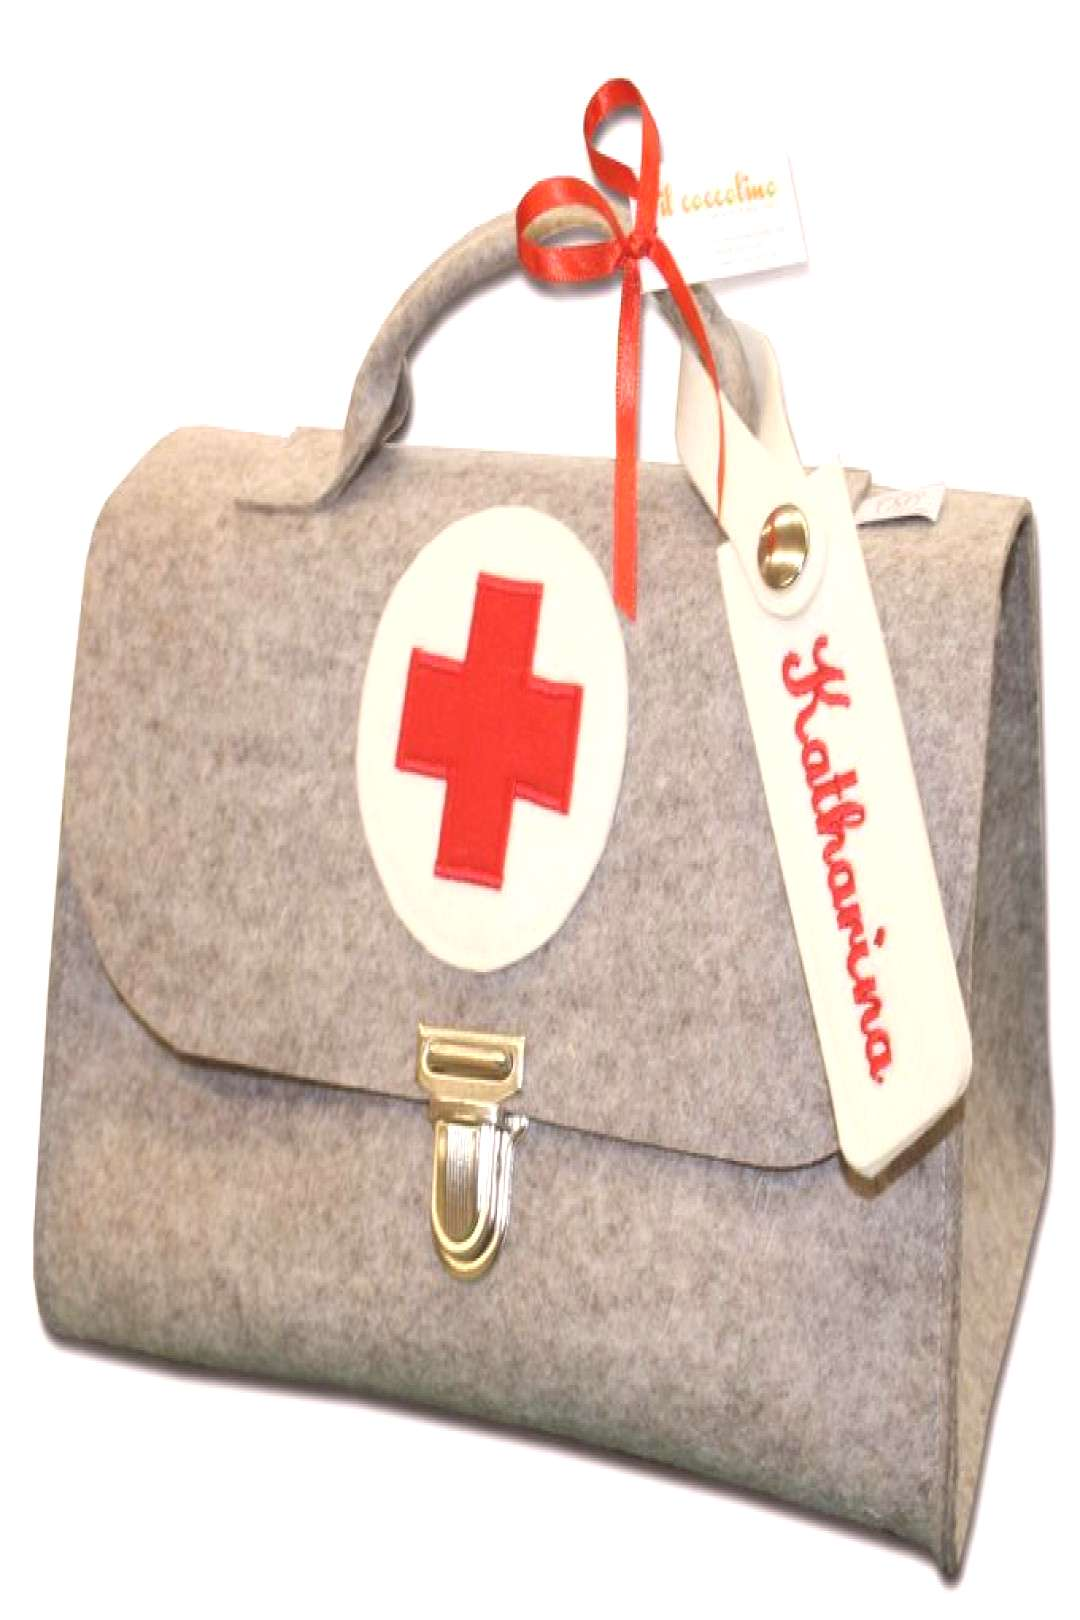 Personalized doctor's case - lovingly sewn!-Personalisierter Arztkoffer – liebevoll genäht!  Per